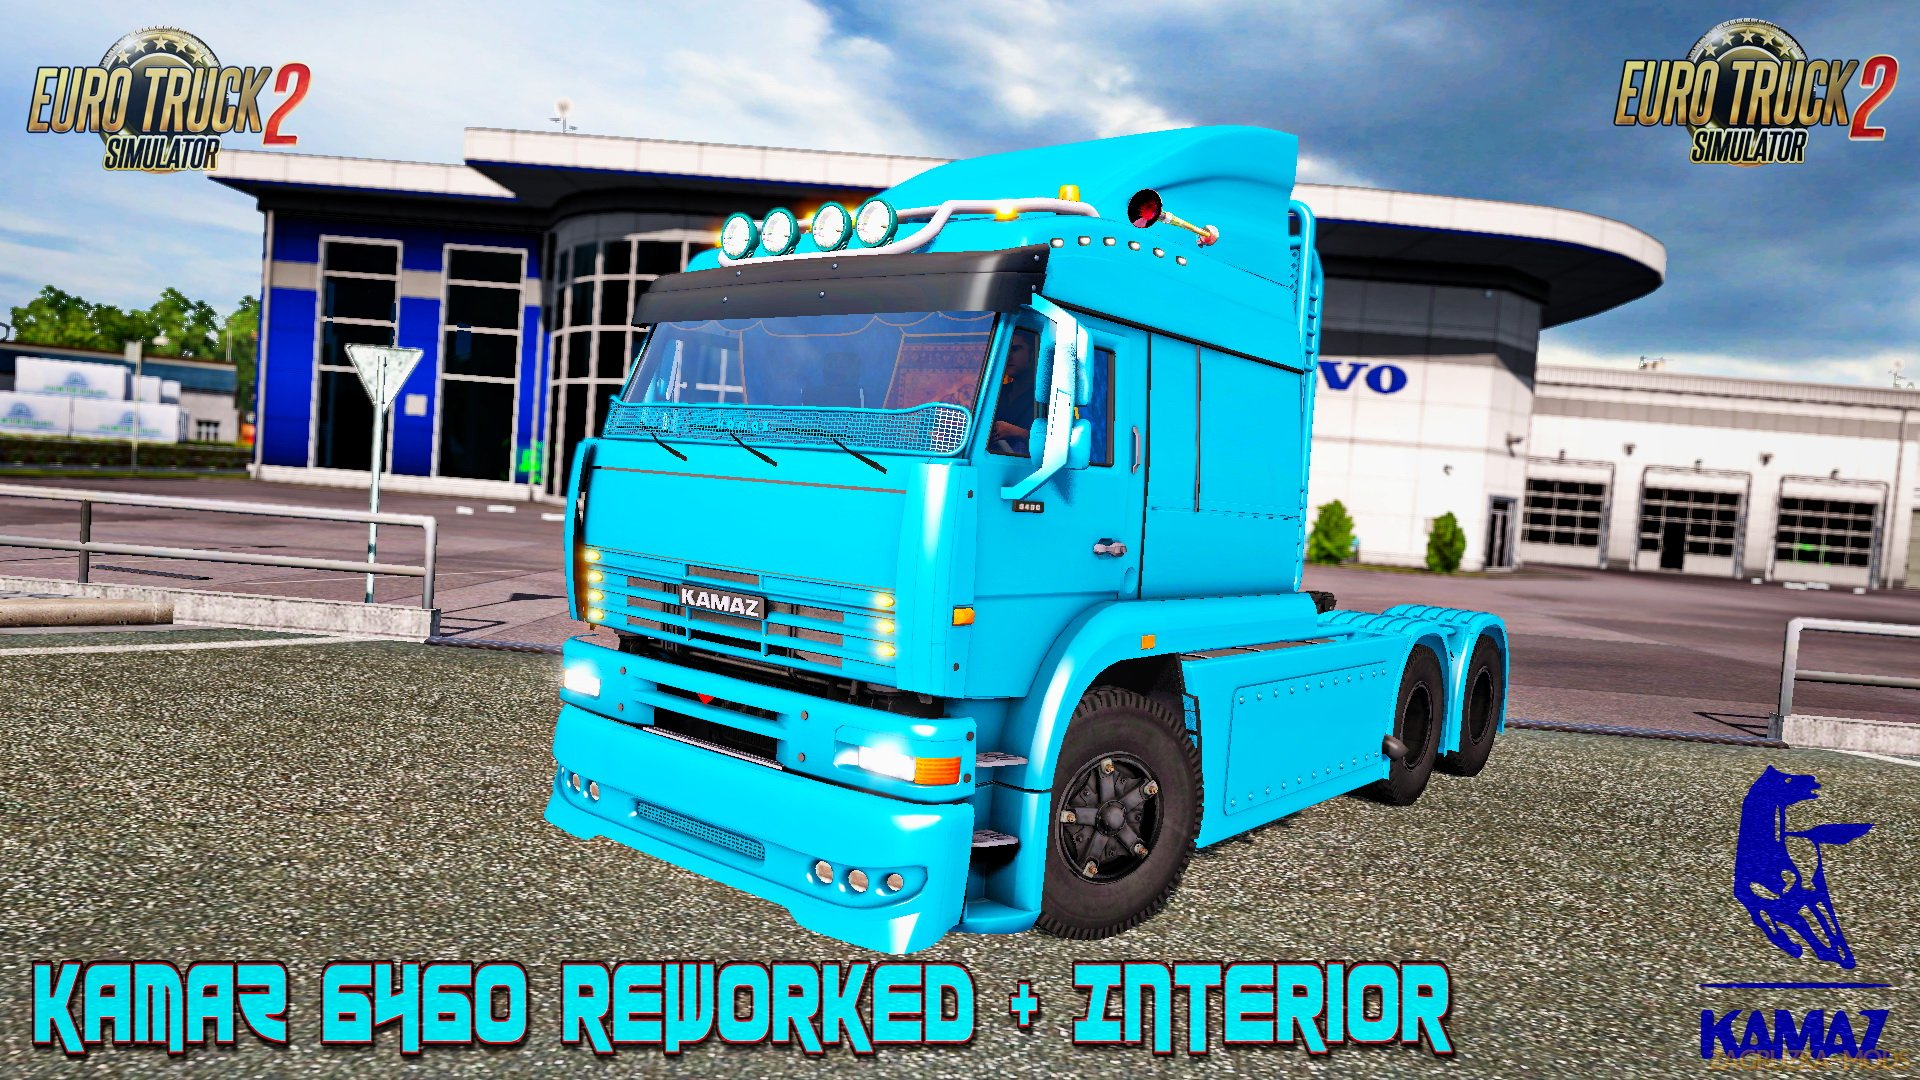 KamaZ 6460 Reworked + Interior v1.0 (1.26.x) for ETS 2